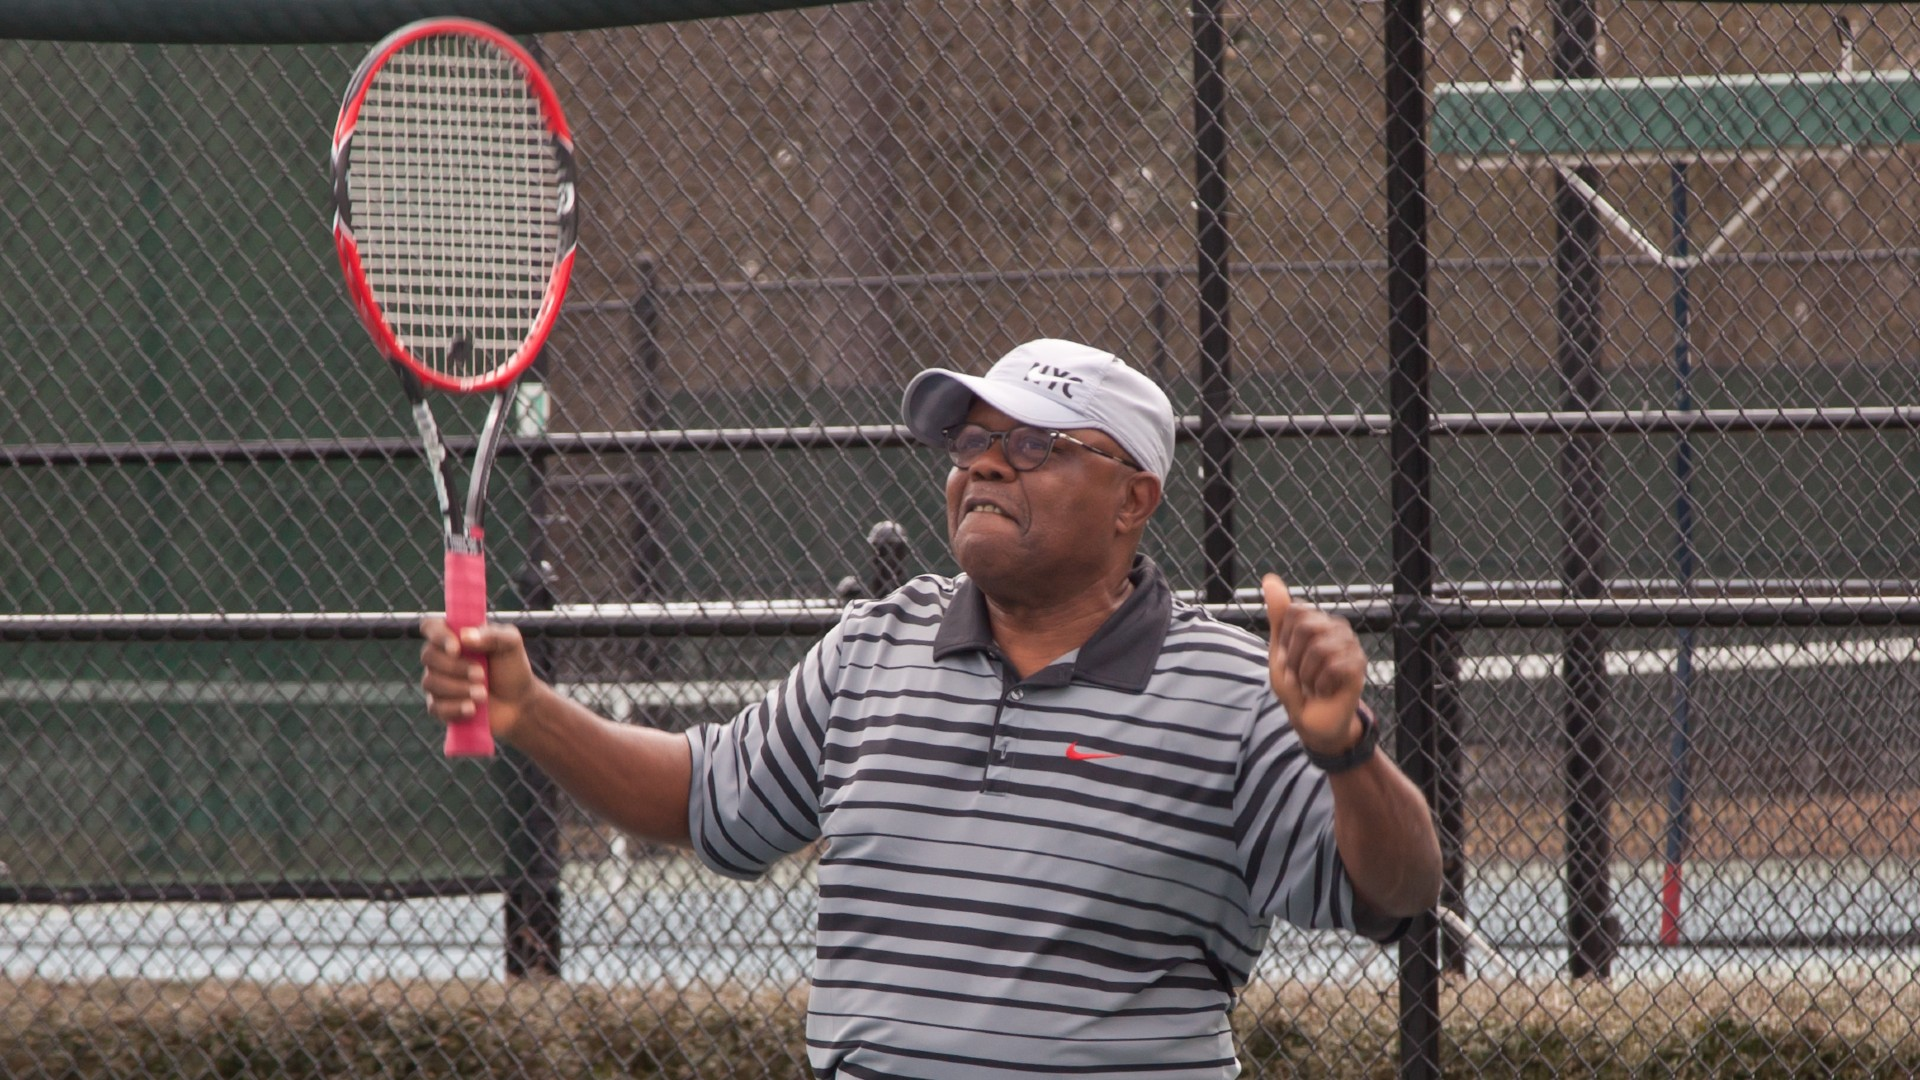 An older adult playing tennis